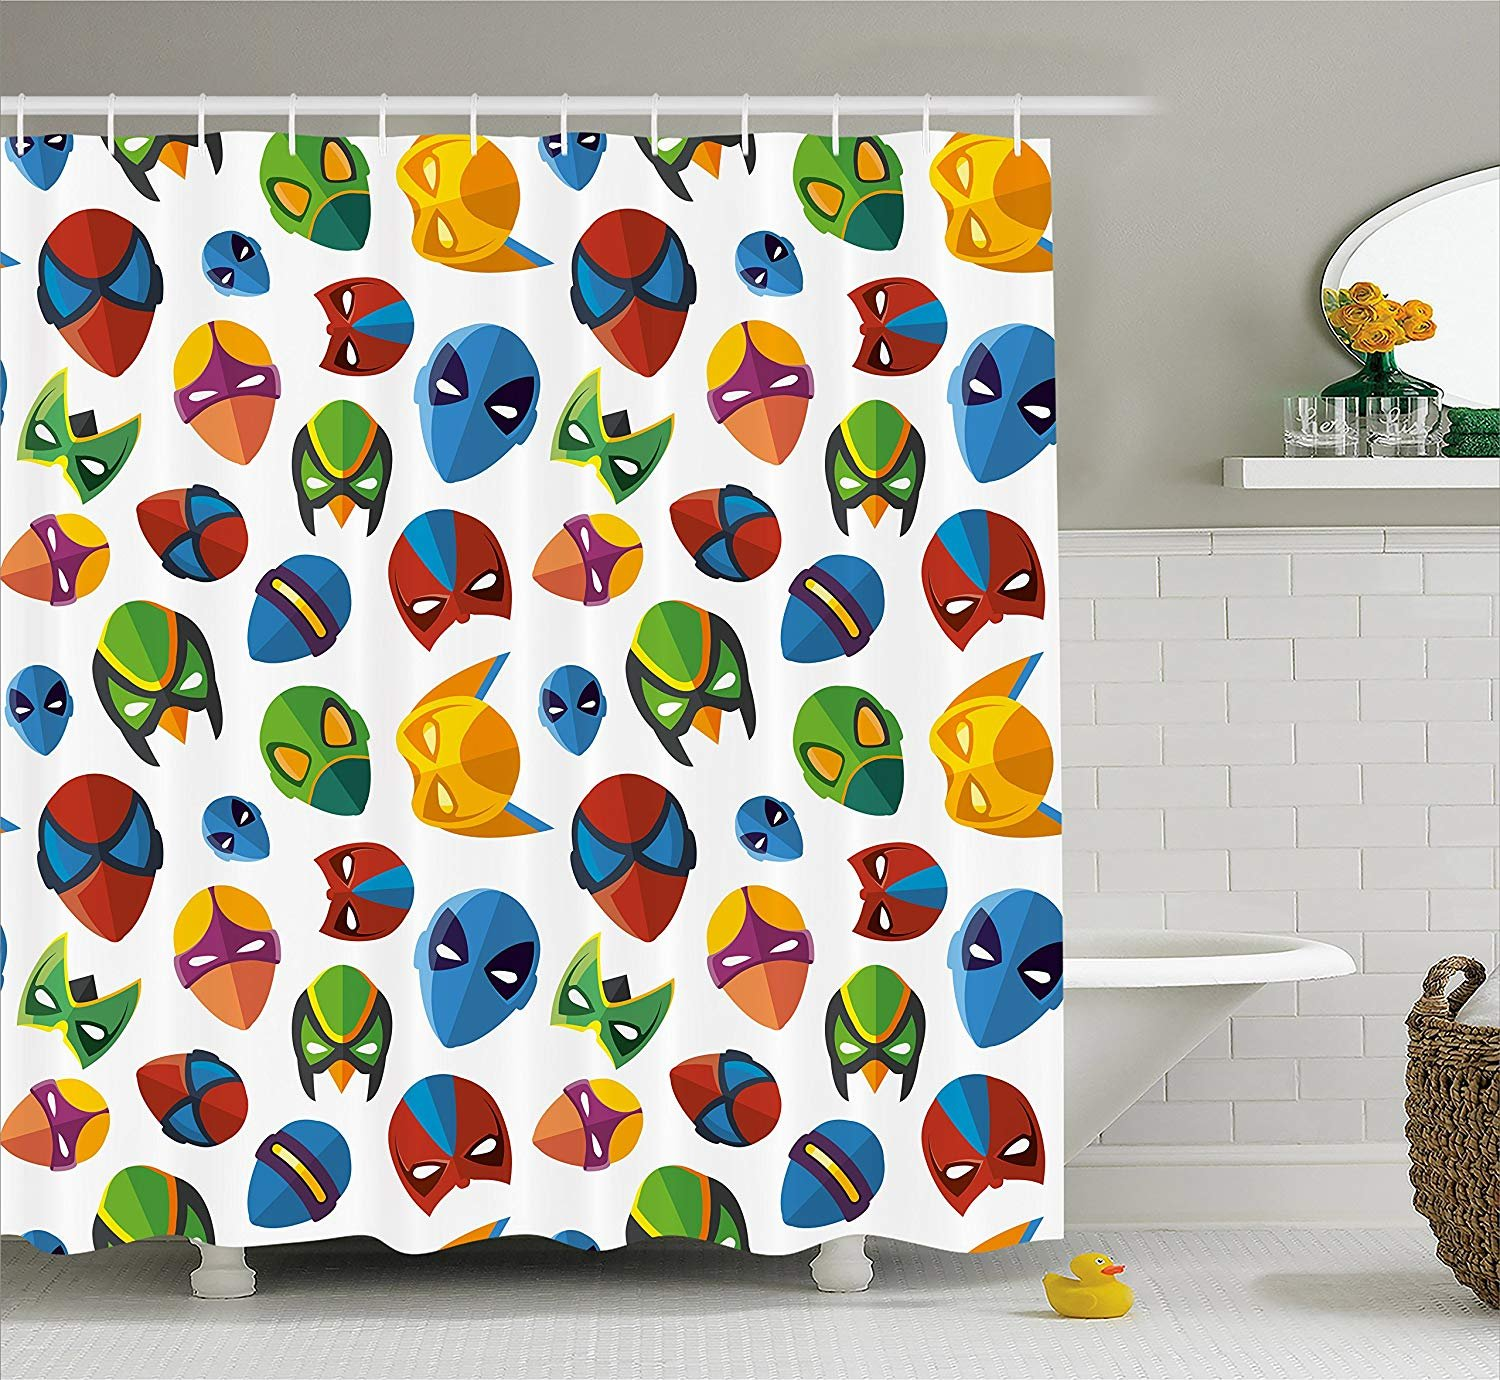 Eurag Superhero Shower Curtain Legendary Cartoon Character Masks Flash Batman Spider Man Comic Costume Print Fabric Bathroom Decor Set With Hooks